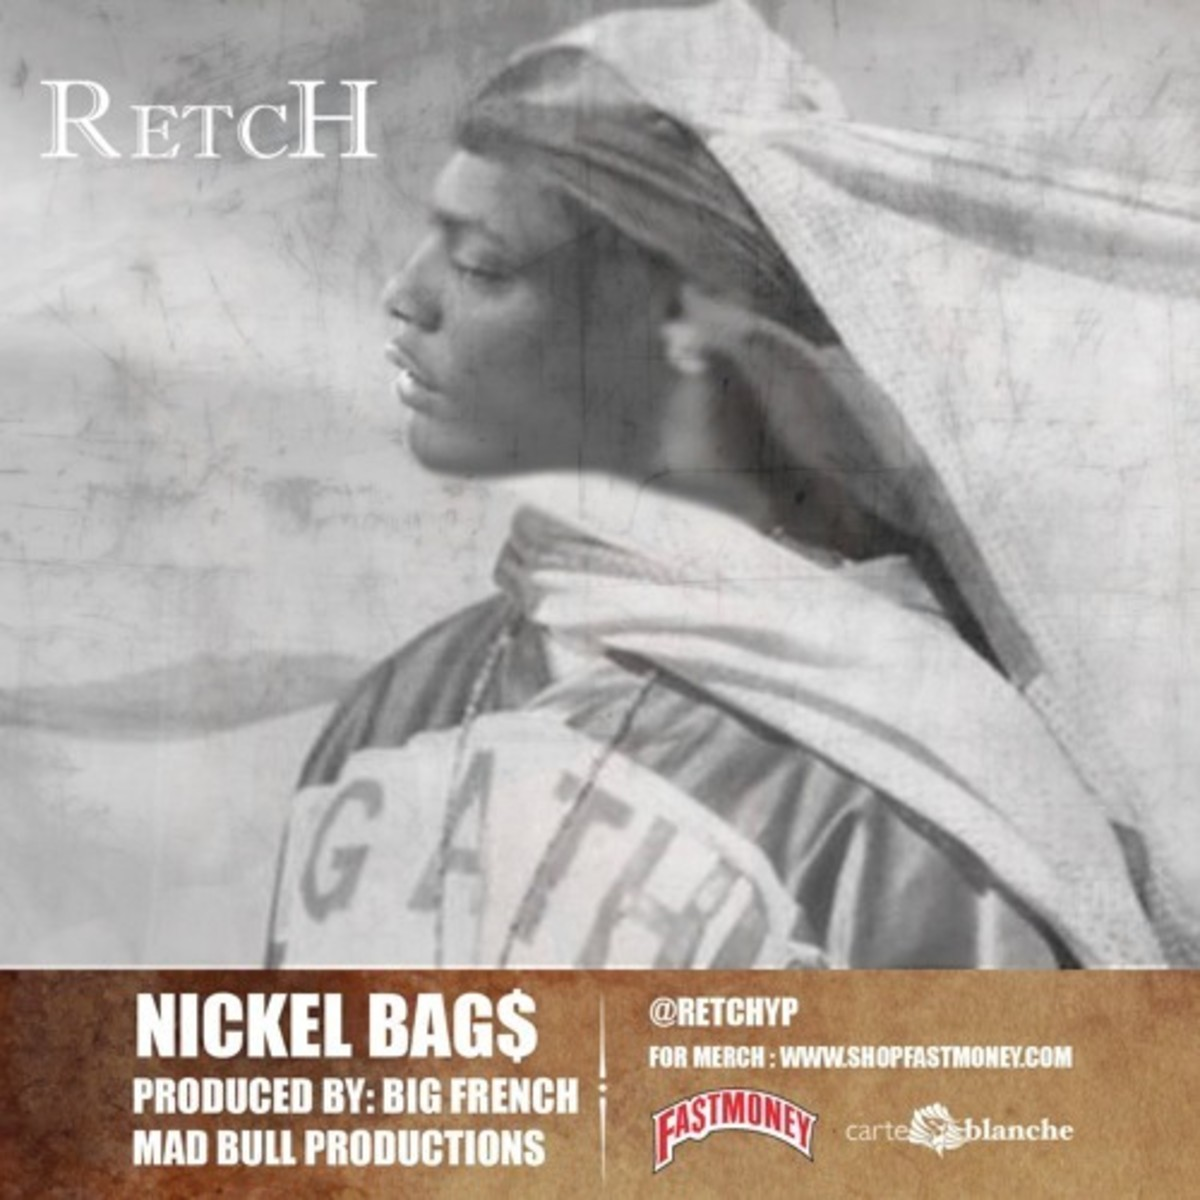 retch-nickel-bags.jpg